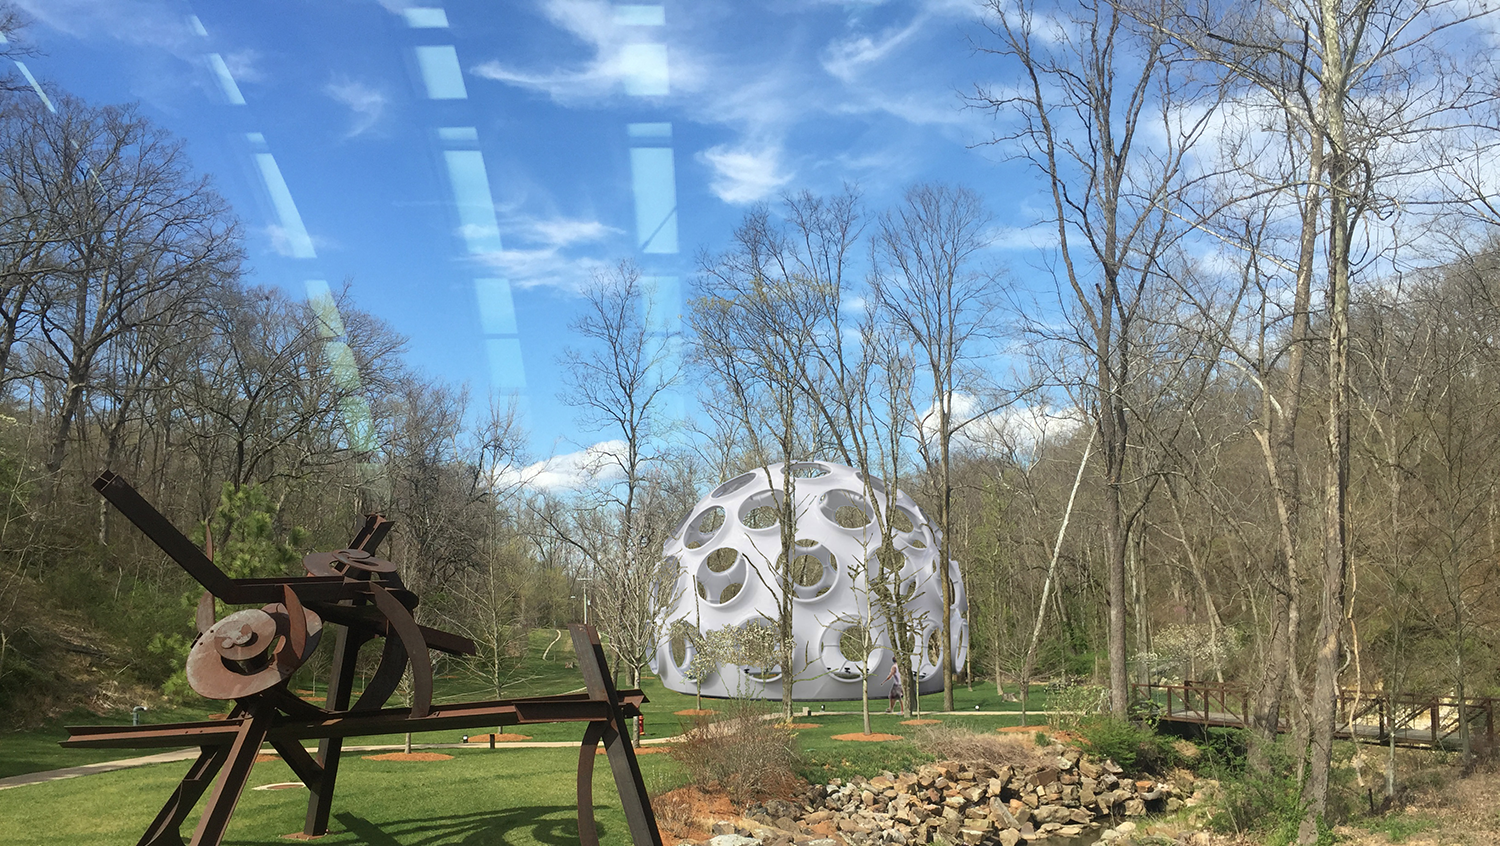 3D computer rendering of Buckminster's Fly Eye Dome as it will appear on the North Lawn at Crystal Bridges Museum of American Art. (View from Early 20th Century Gallery Bridge.)